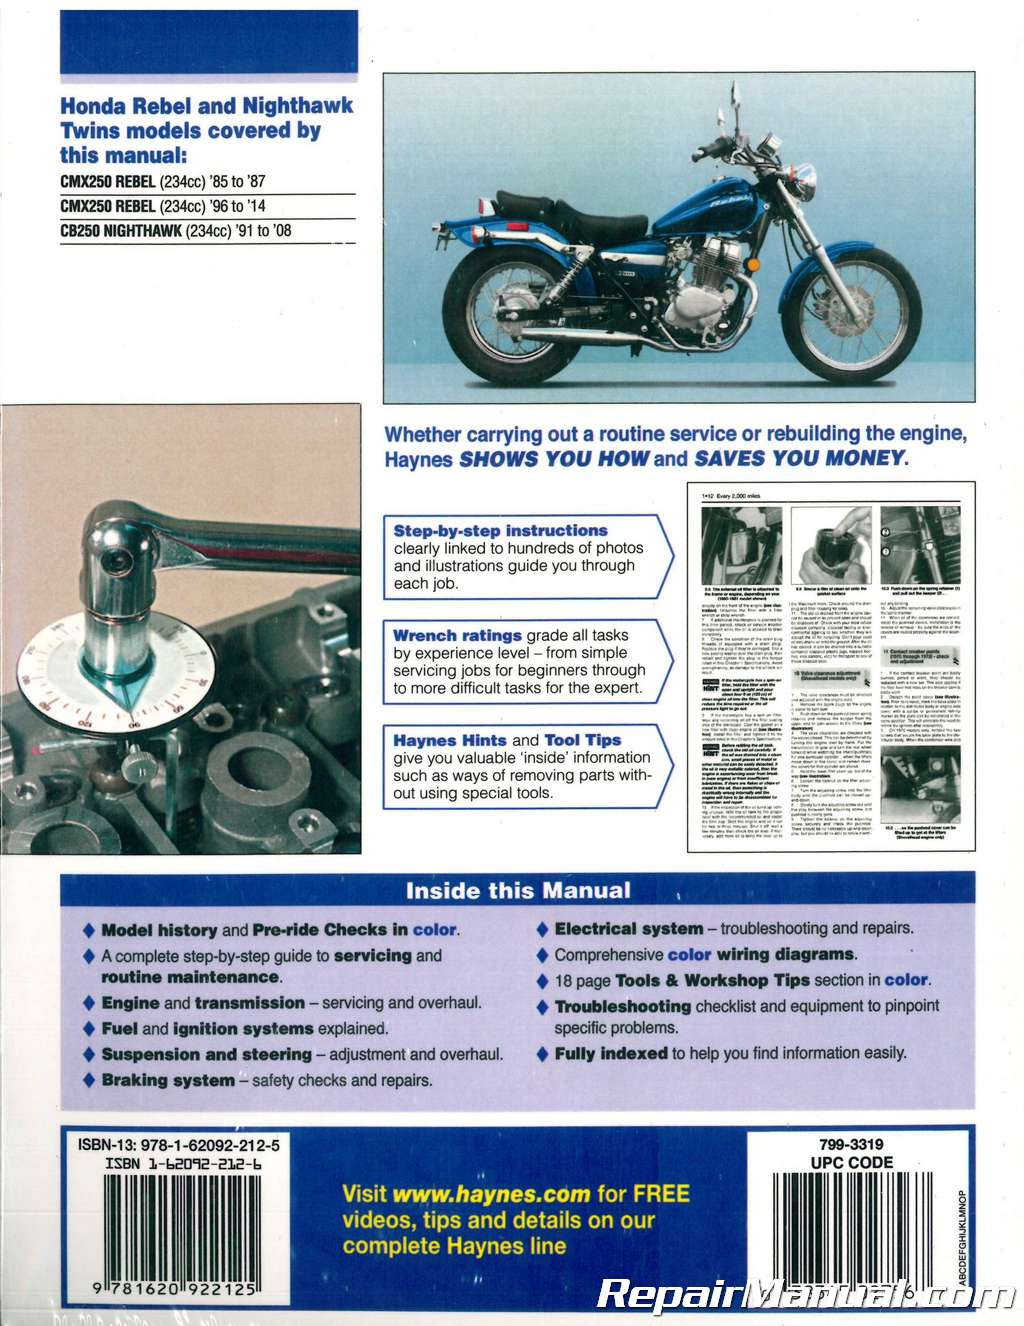 Honda Cmx 250 Wiring Diagram List Of Schematic Circuit Rebel Haynes 1985 2014 Cmx250 Cb250 Nighthawk Twins Motorcycle Rh Repairmanual Com 2001